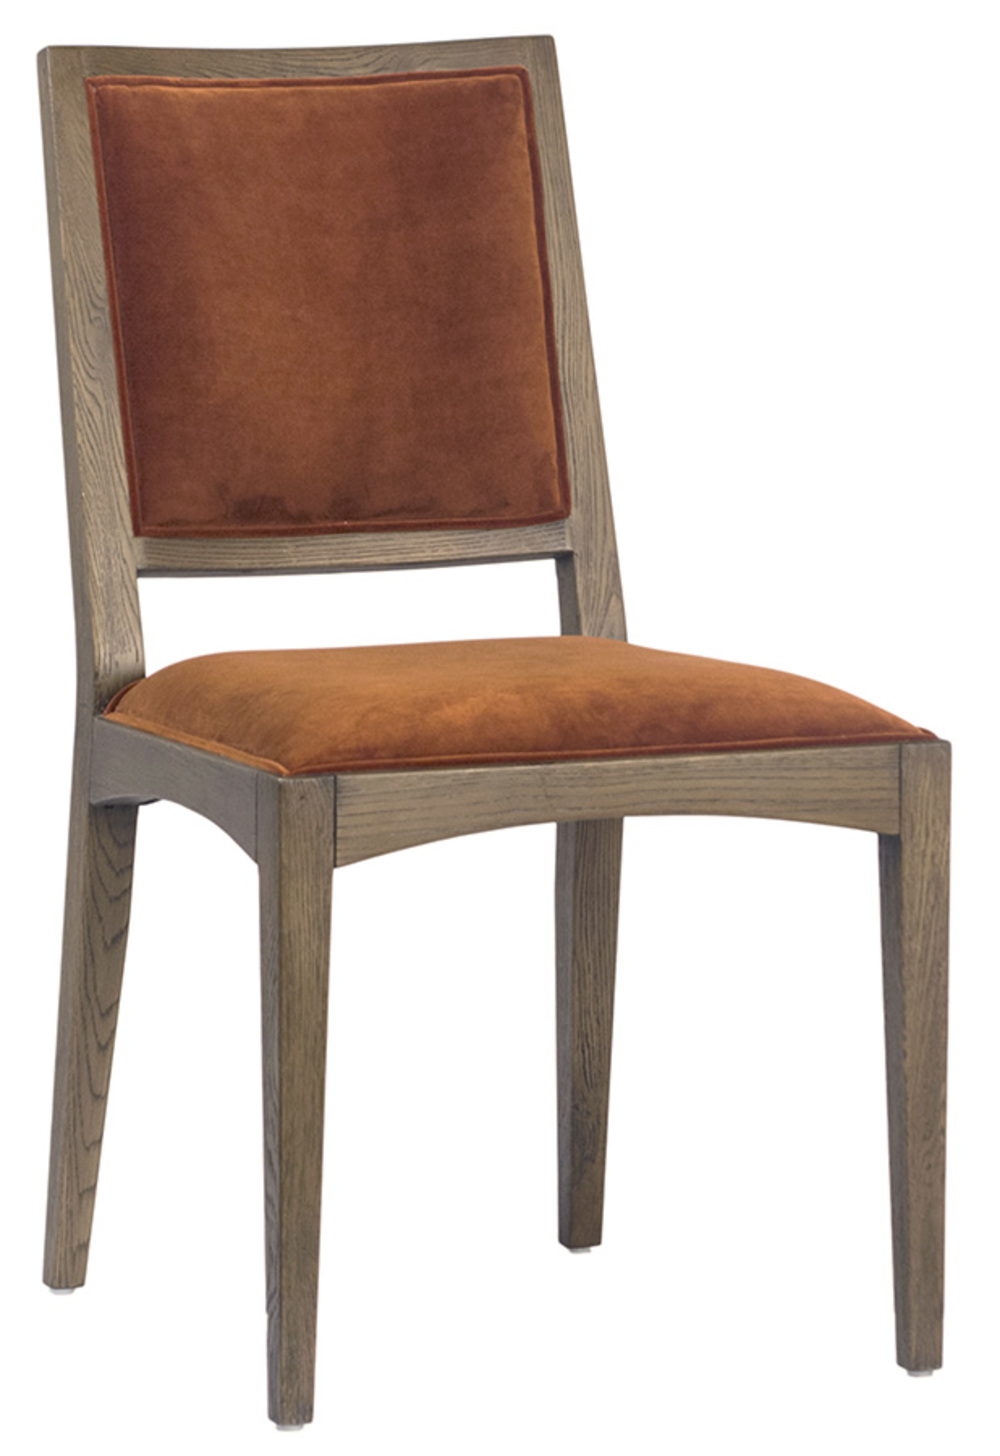 Dovetail Furniture - Clemens Dining Chair